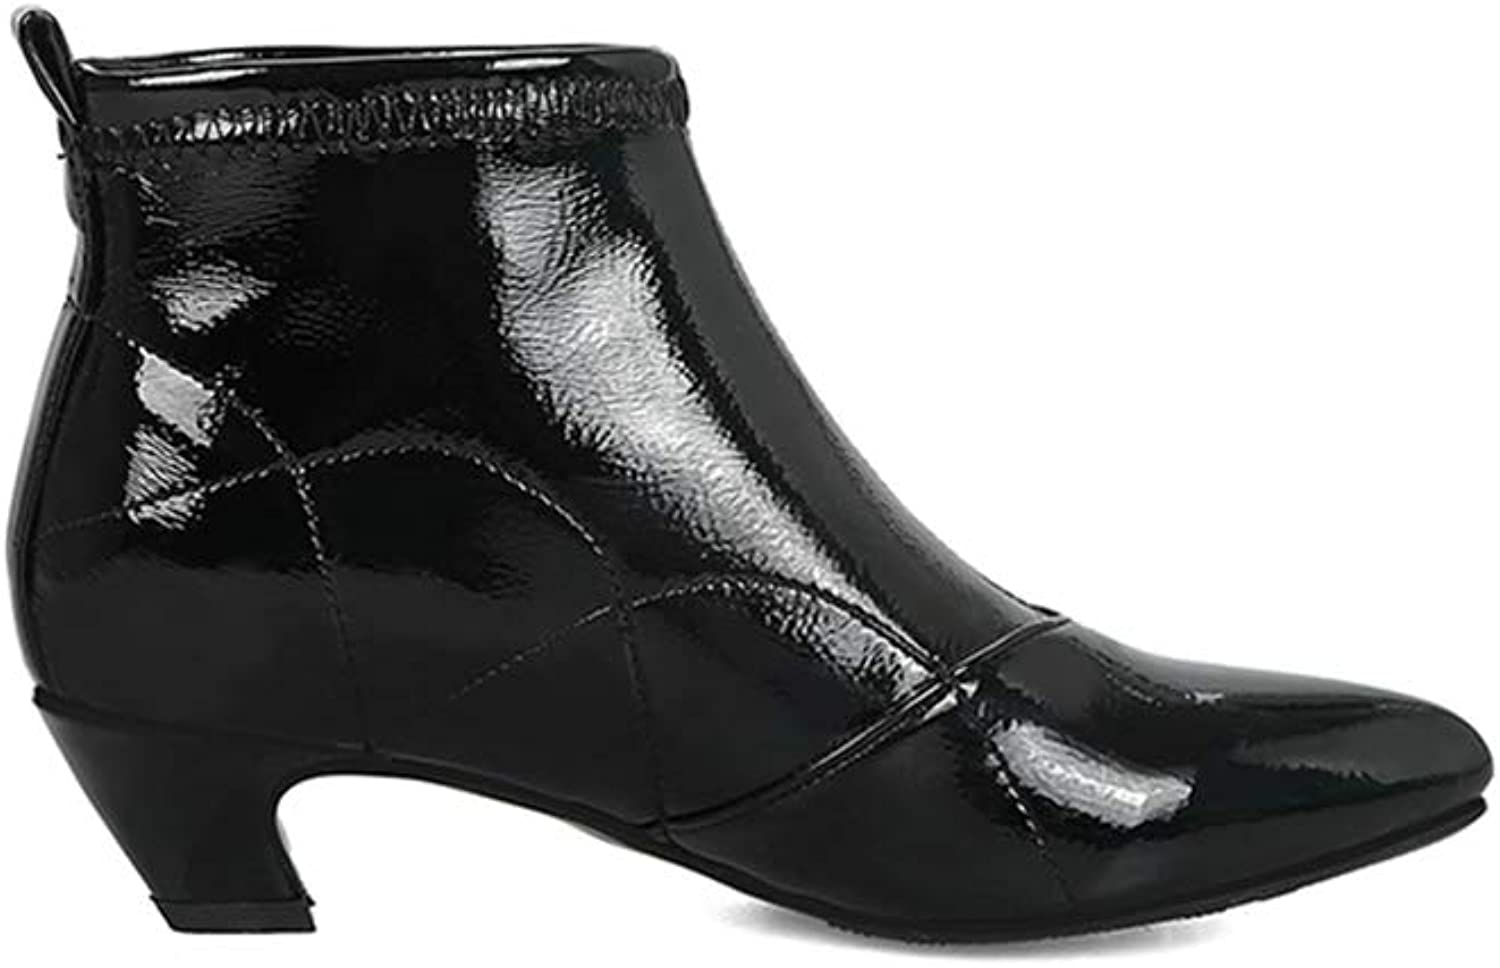 Women's Ankle Boots Women Pointed High Heel Female Sexy shoes Fashion Elegant Party Dress Boot